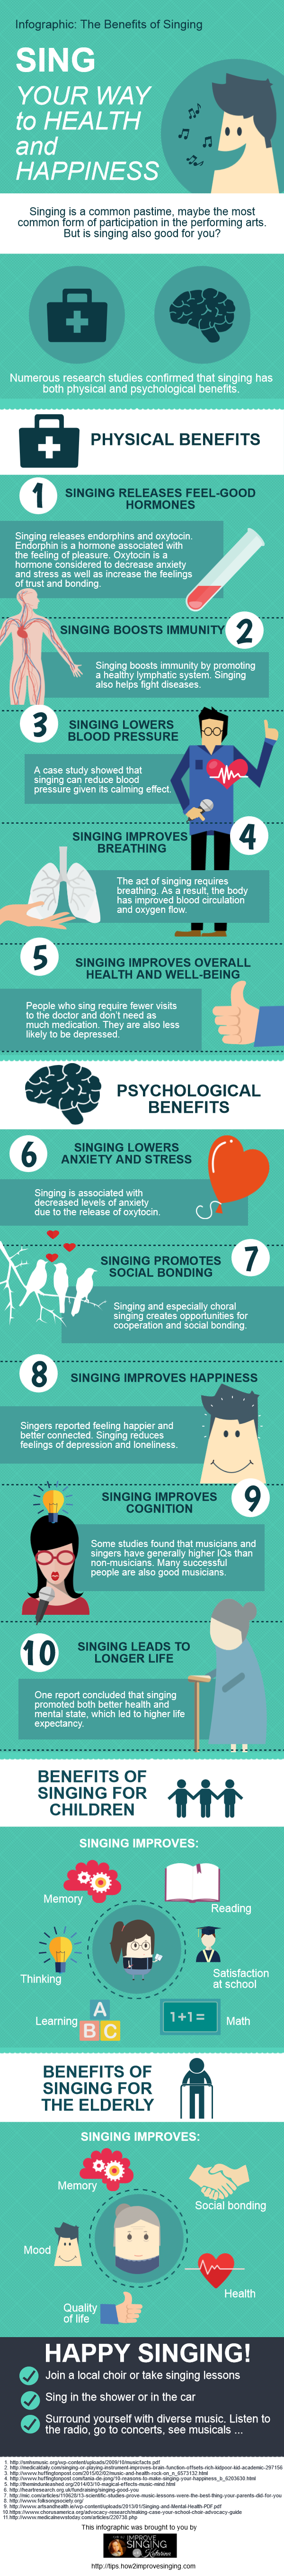 Singing Infographic: Benefits of Singing